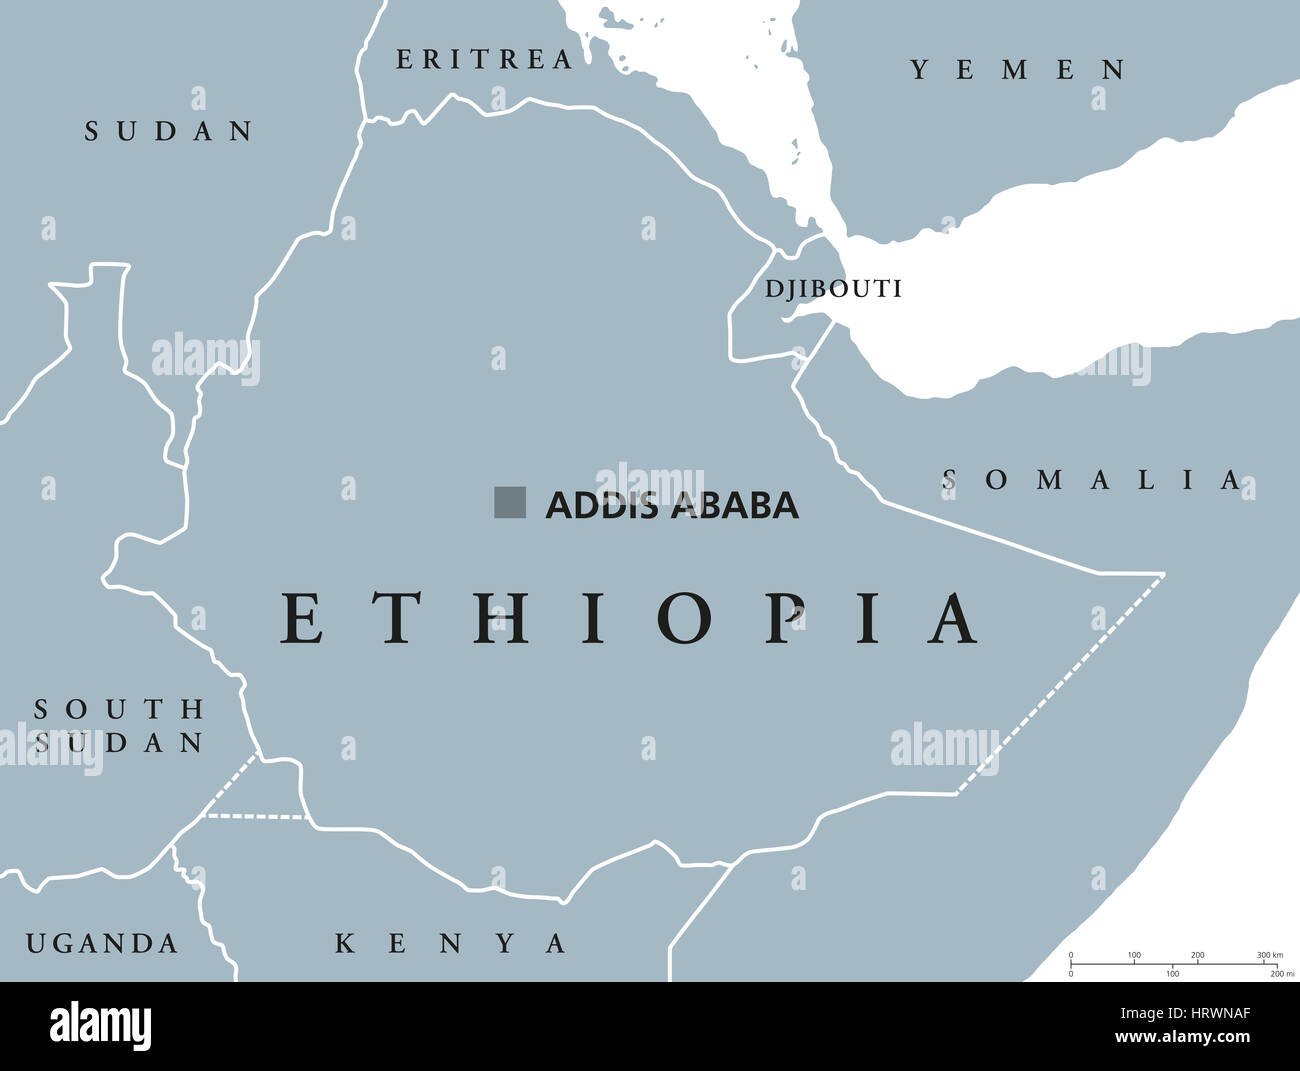 Ethiopia political map with capital Addis Ababa and borders